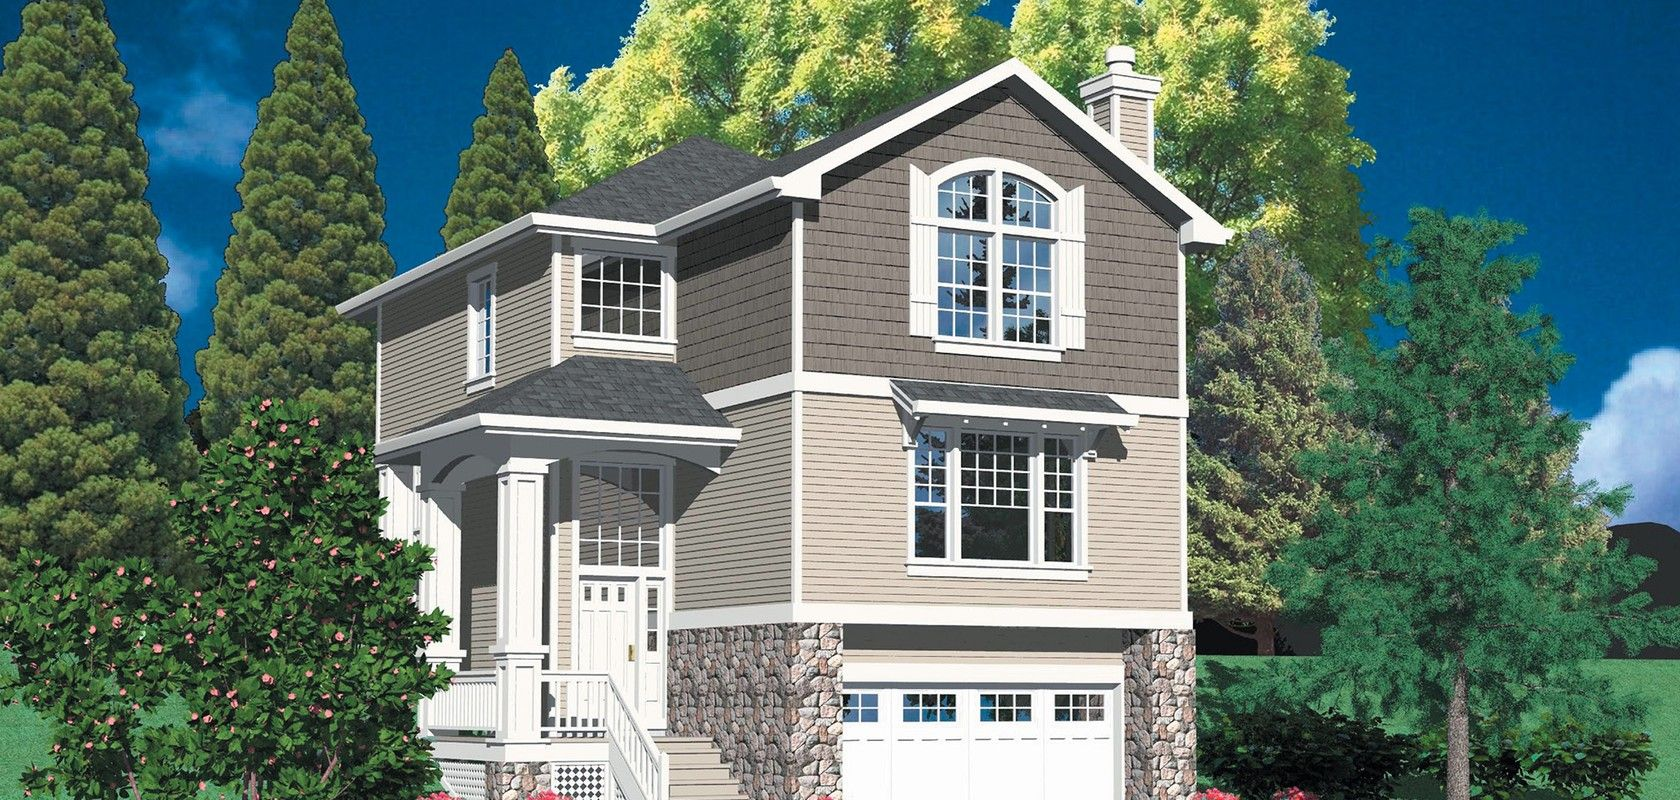 Mascord Plan 2195A -The Whittgold